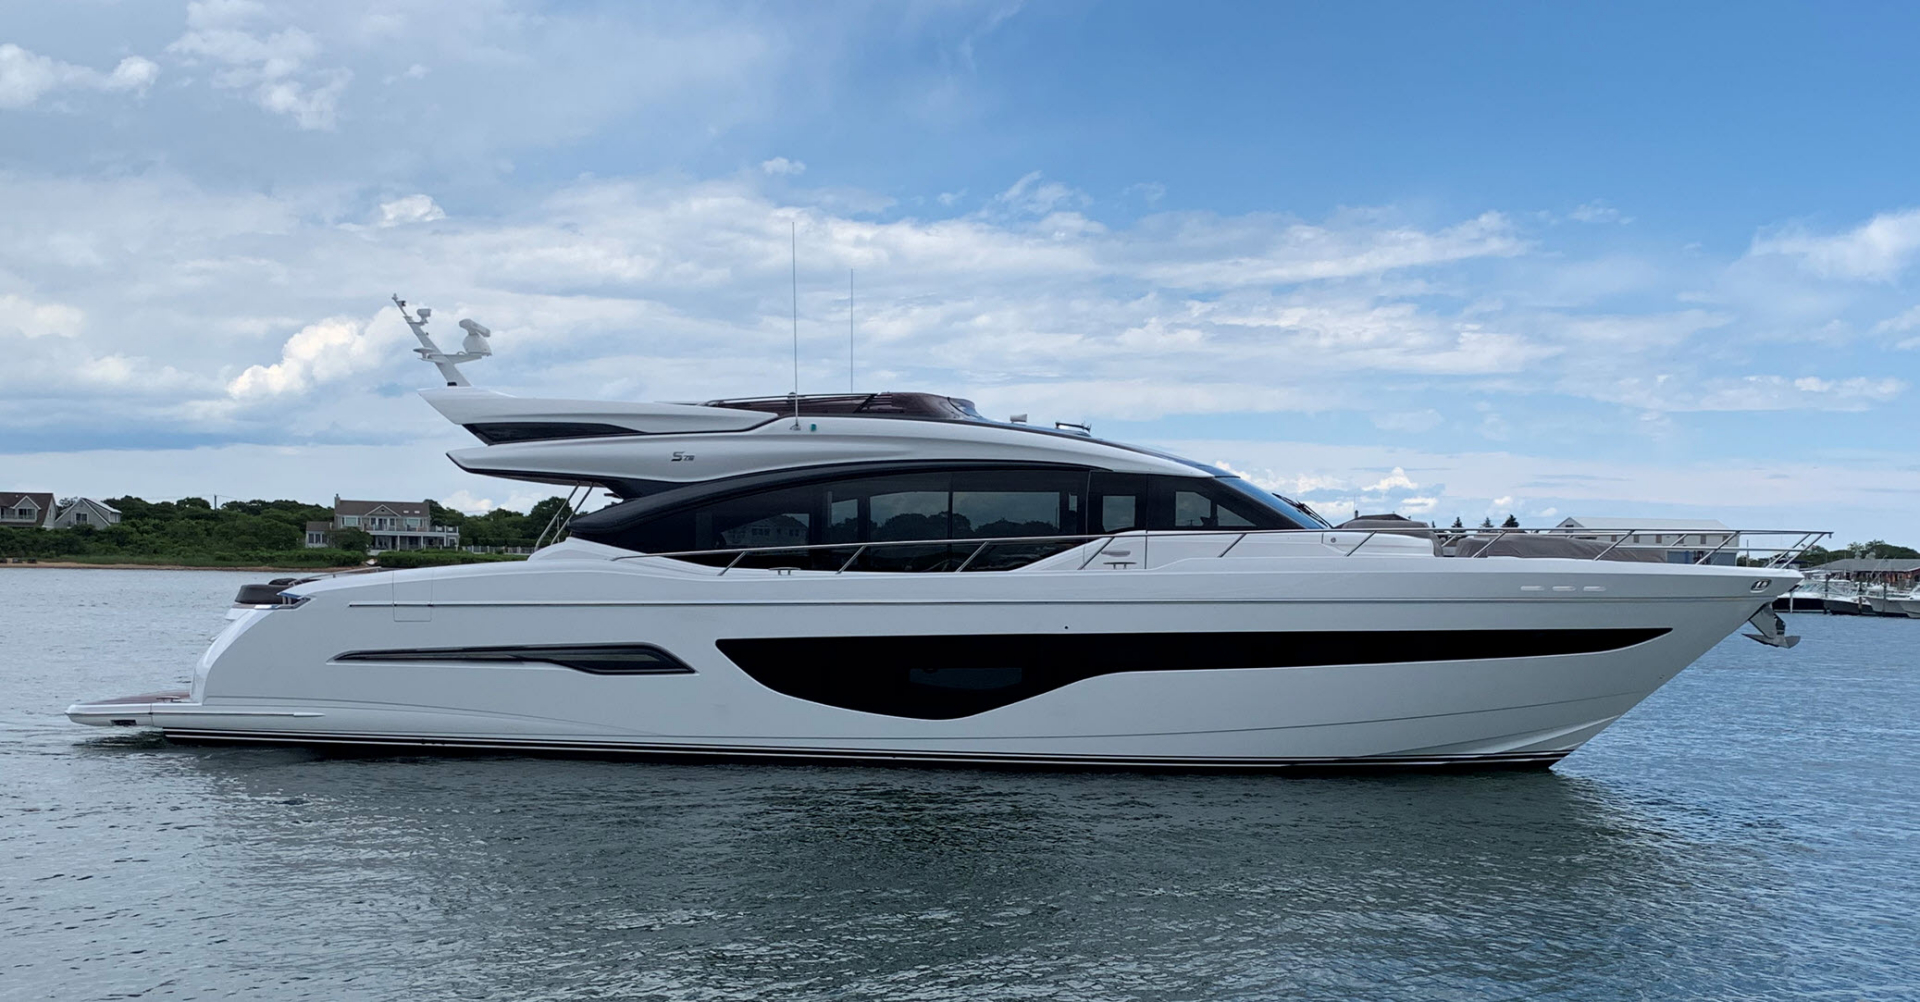 Princess S78 Yacht for sale in montauk ny